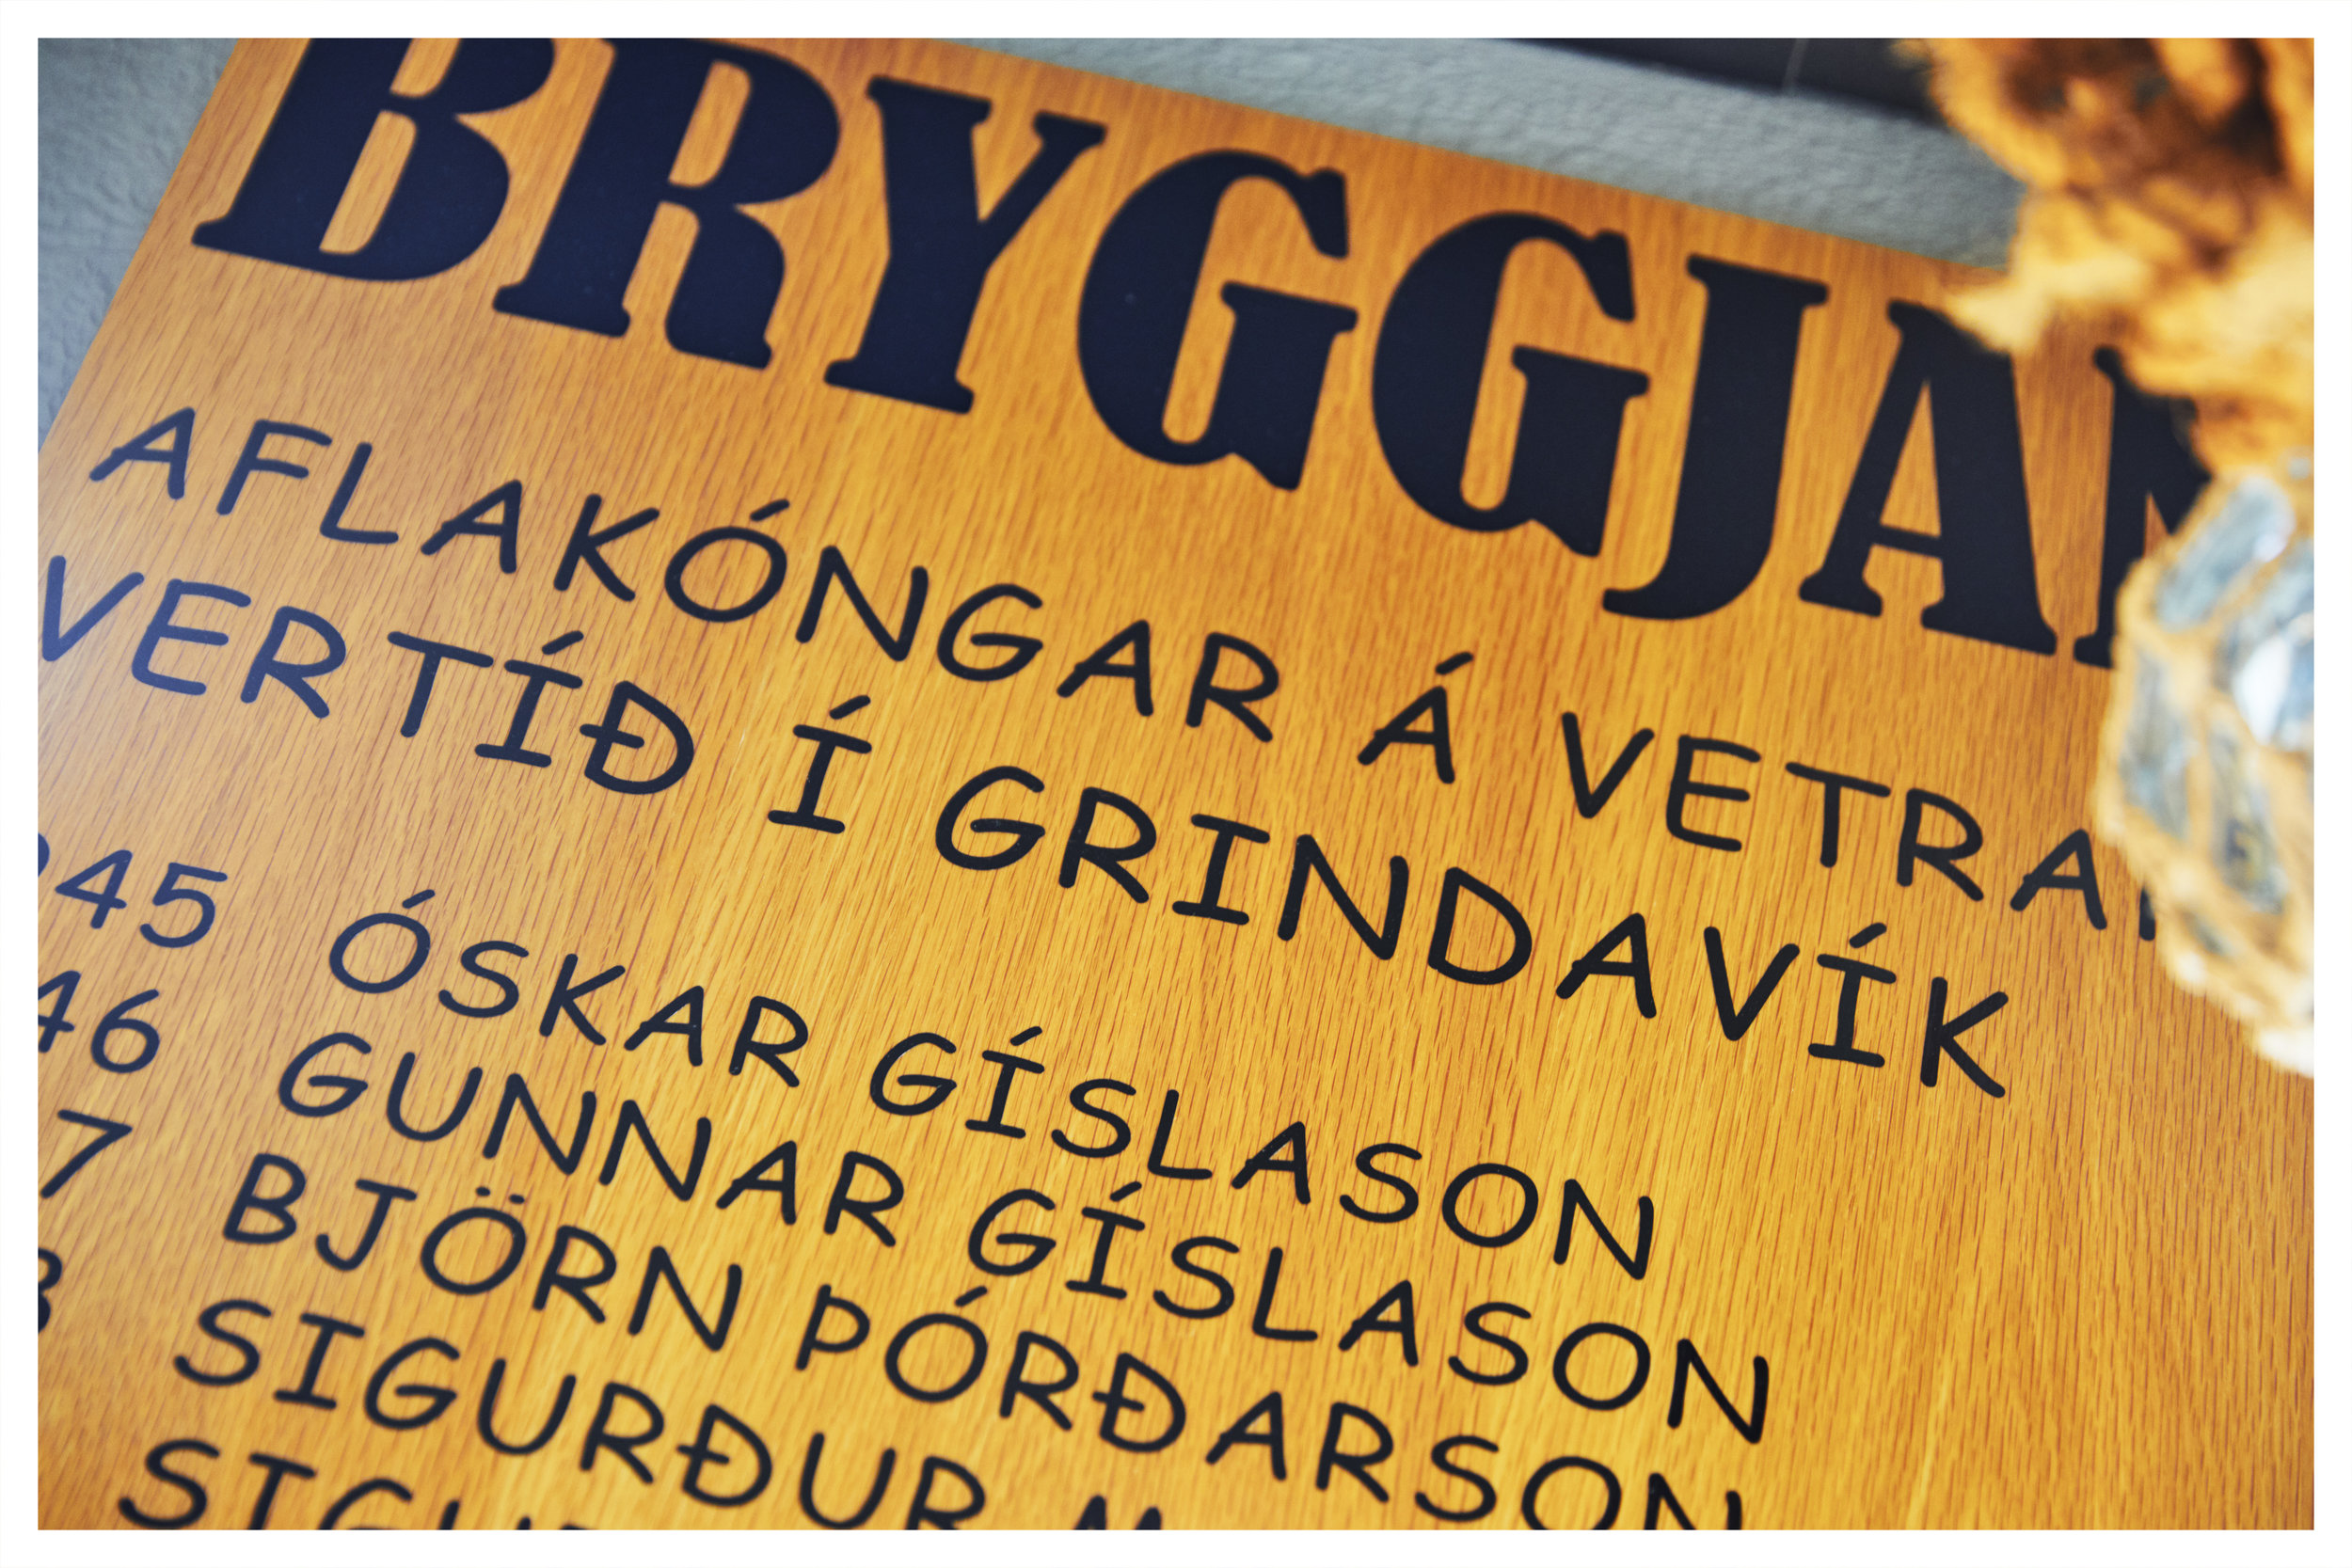 Bryggjan Cafe  - The cafe carries many artifacts and referenced to the Fishing tradition that Grindavik is based on.